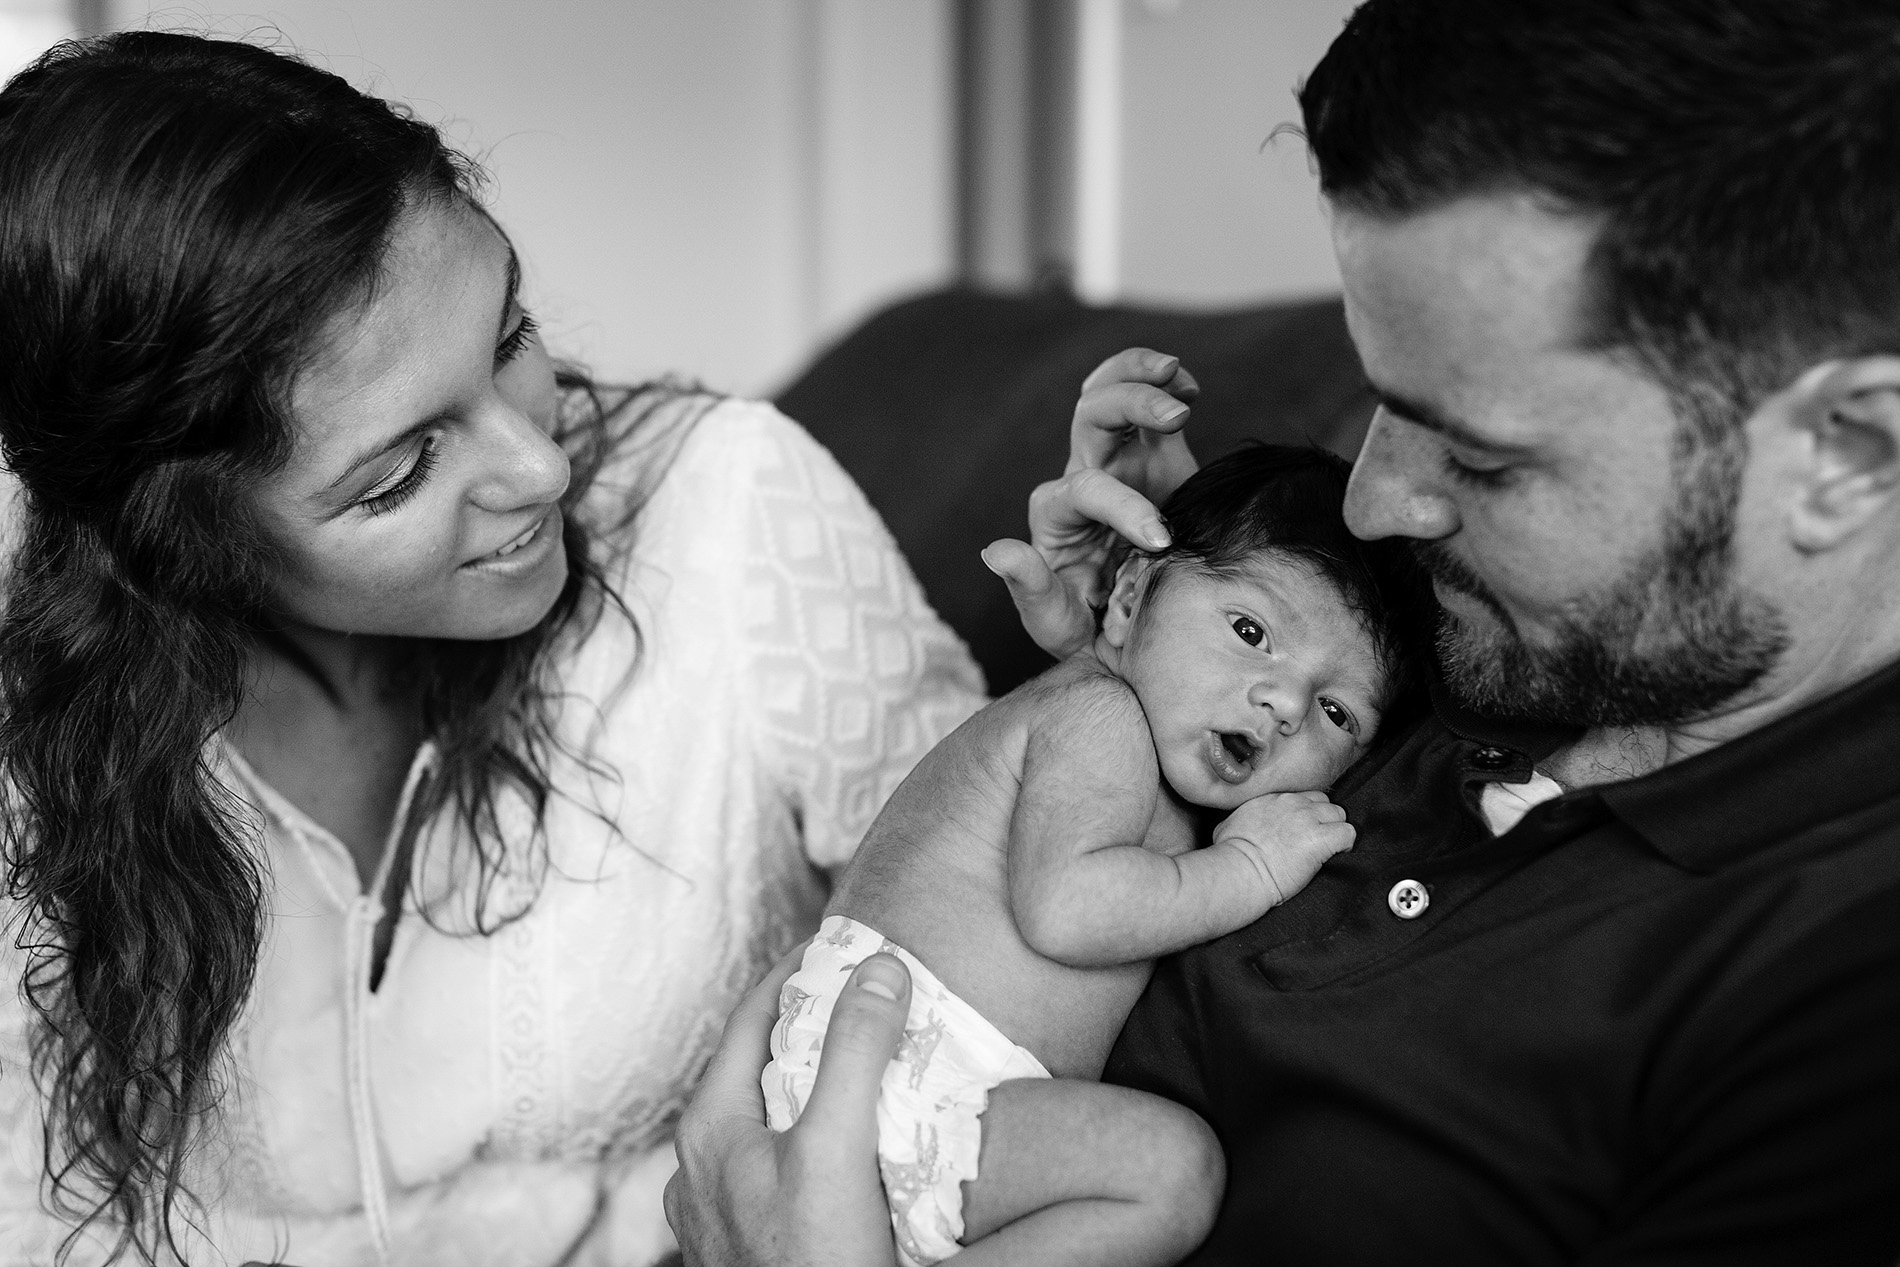 new mother and father admire adorable newborn baby